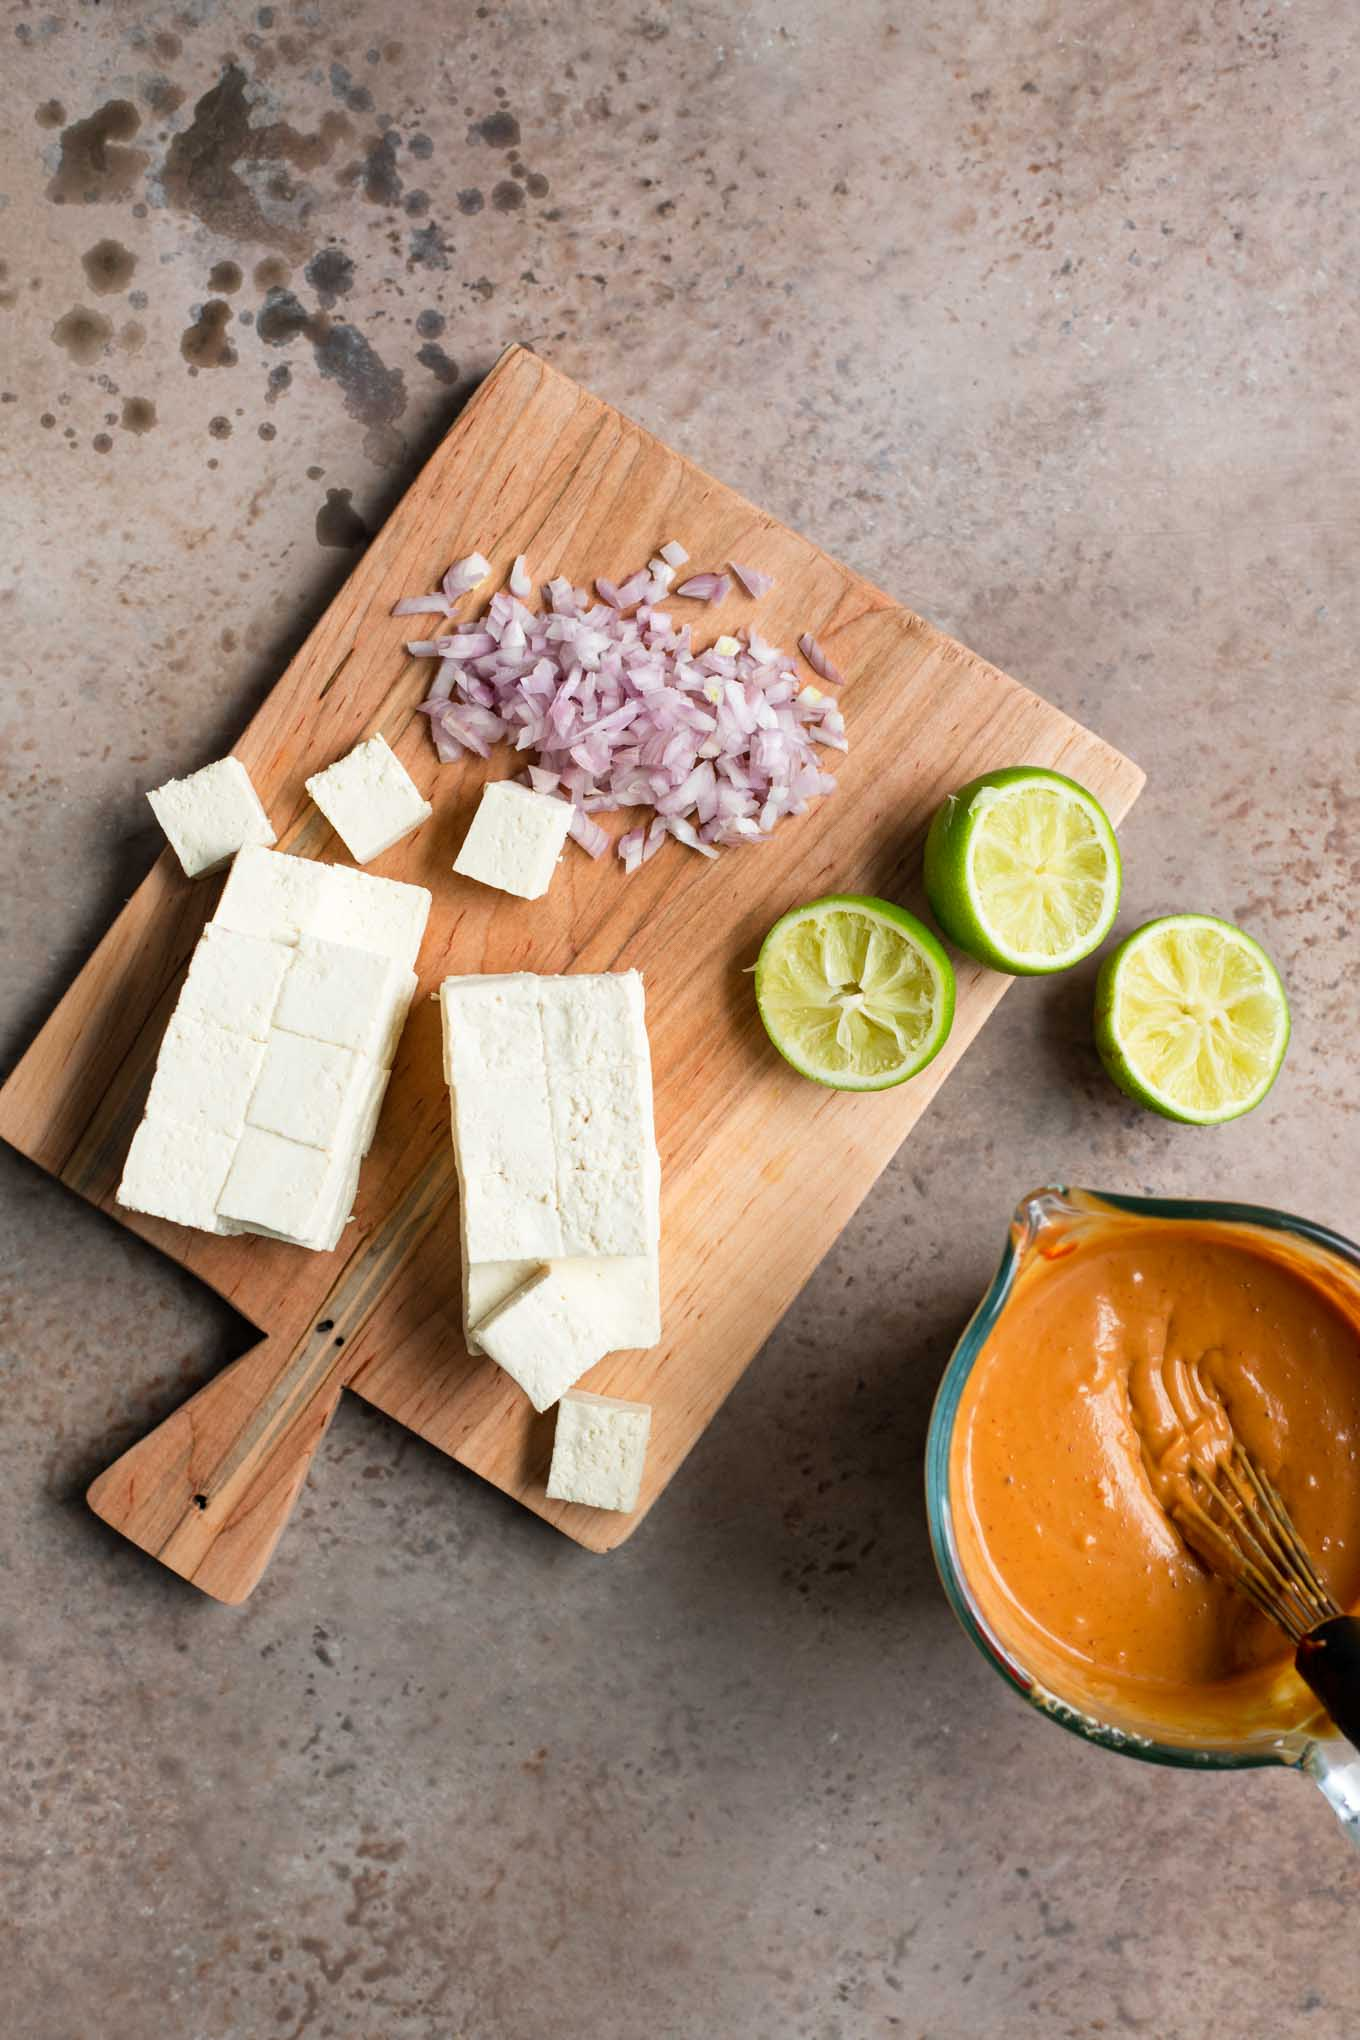 cubed tofu, minced shallot, squeezed lime halves, and peanut sauce